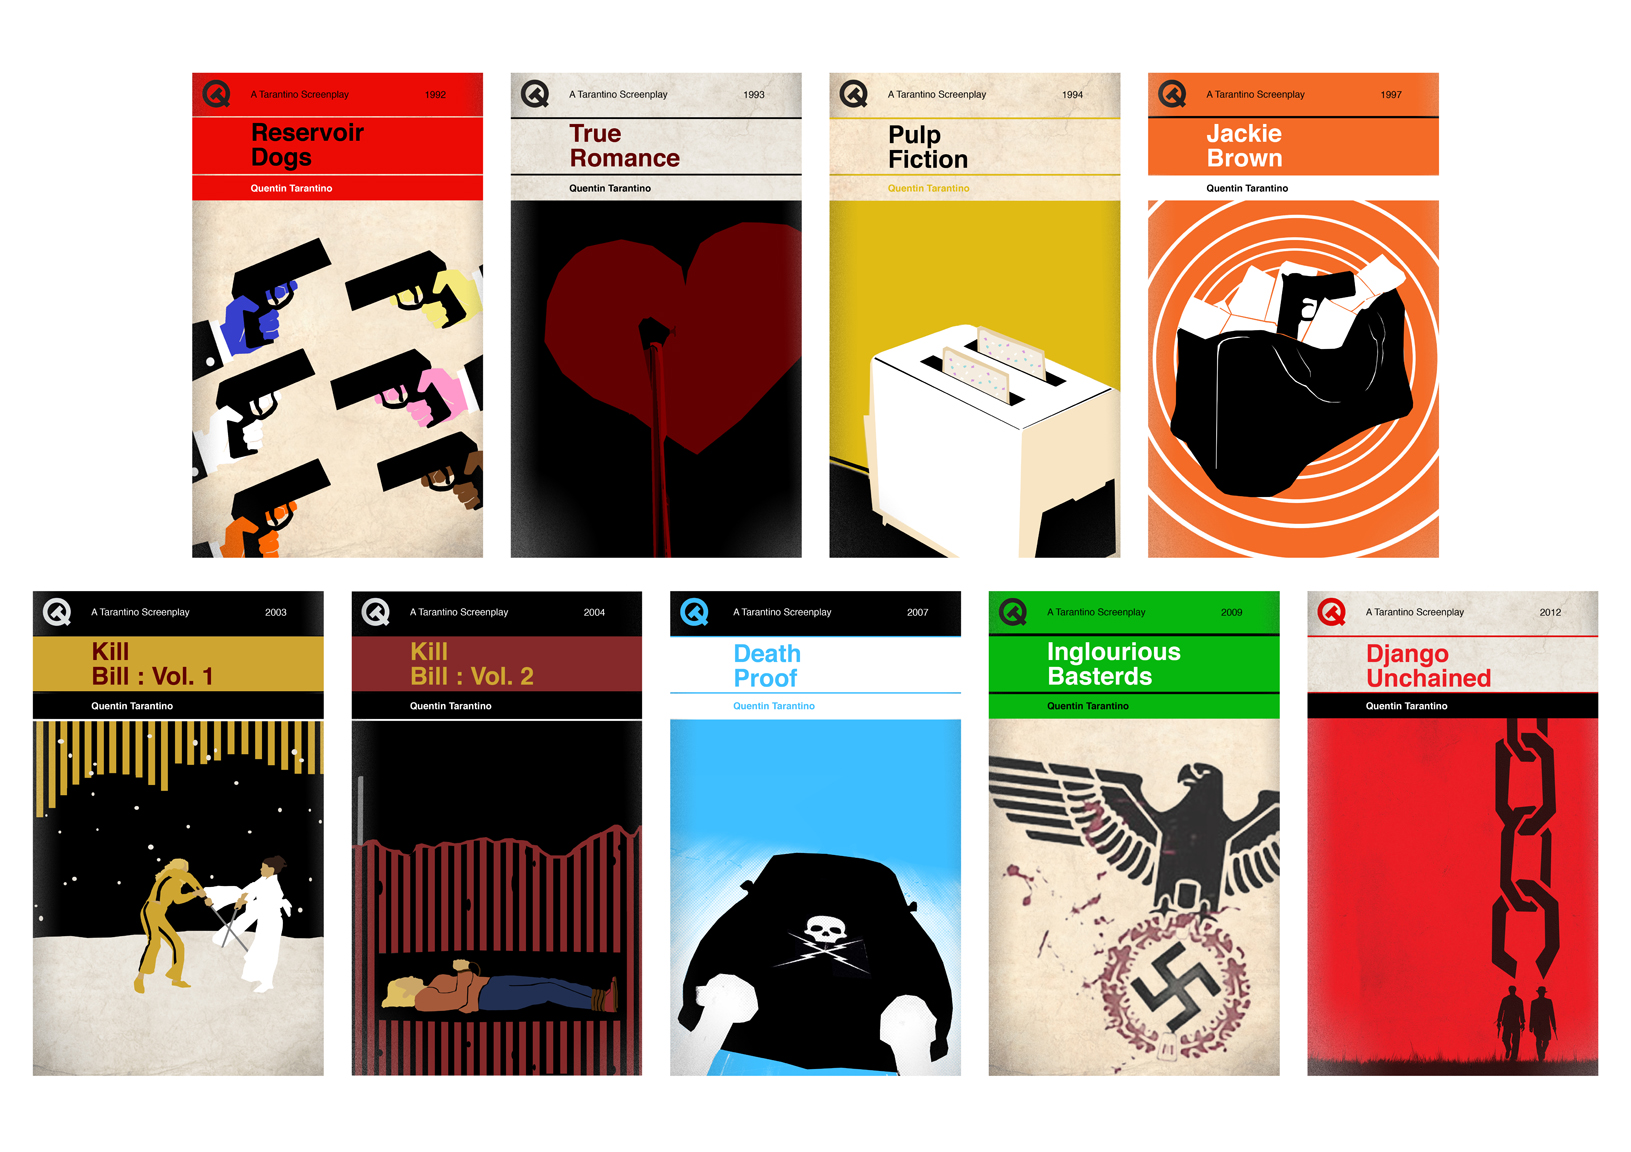 Book Cover Art Styles : Quentin tarantino films re imagined as 'penguin style